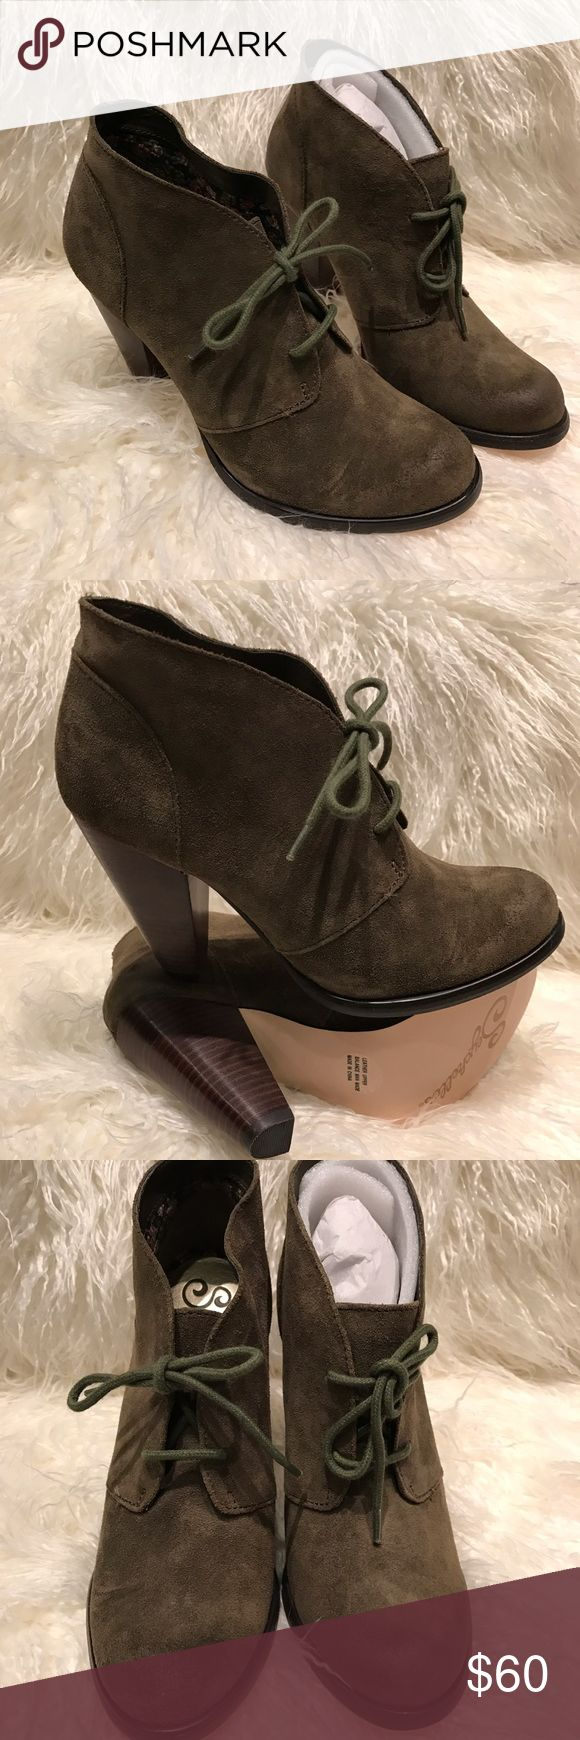 """**New** Never worn Seychelles Suede Booties **New**Never worn """"Bismuth"""" Seychelles Bootie Olive Green.                                                         💥Please use the """"OFFER"""" button. I will not discuss the price in the comment thread. 💥 Thank You 😊 Shoes Heels"""